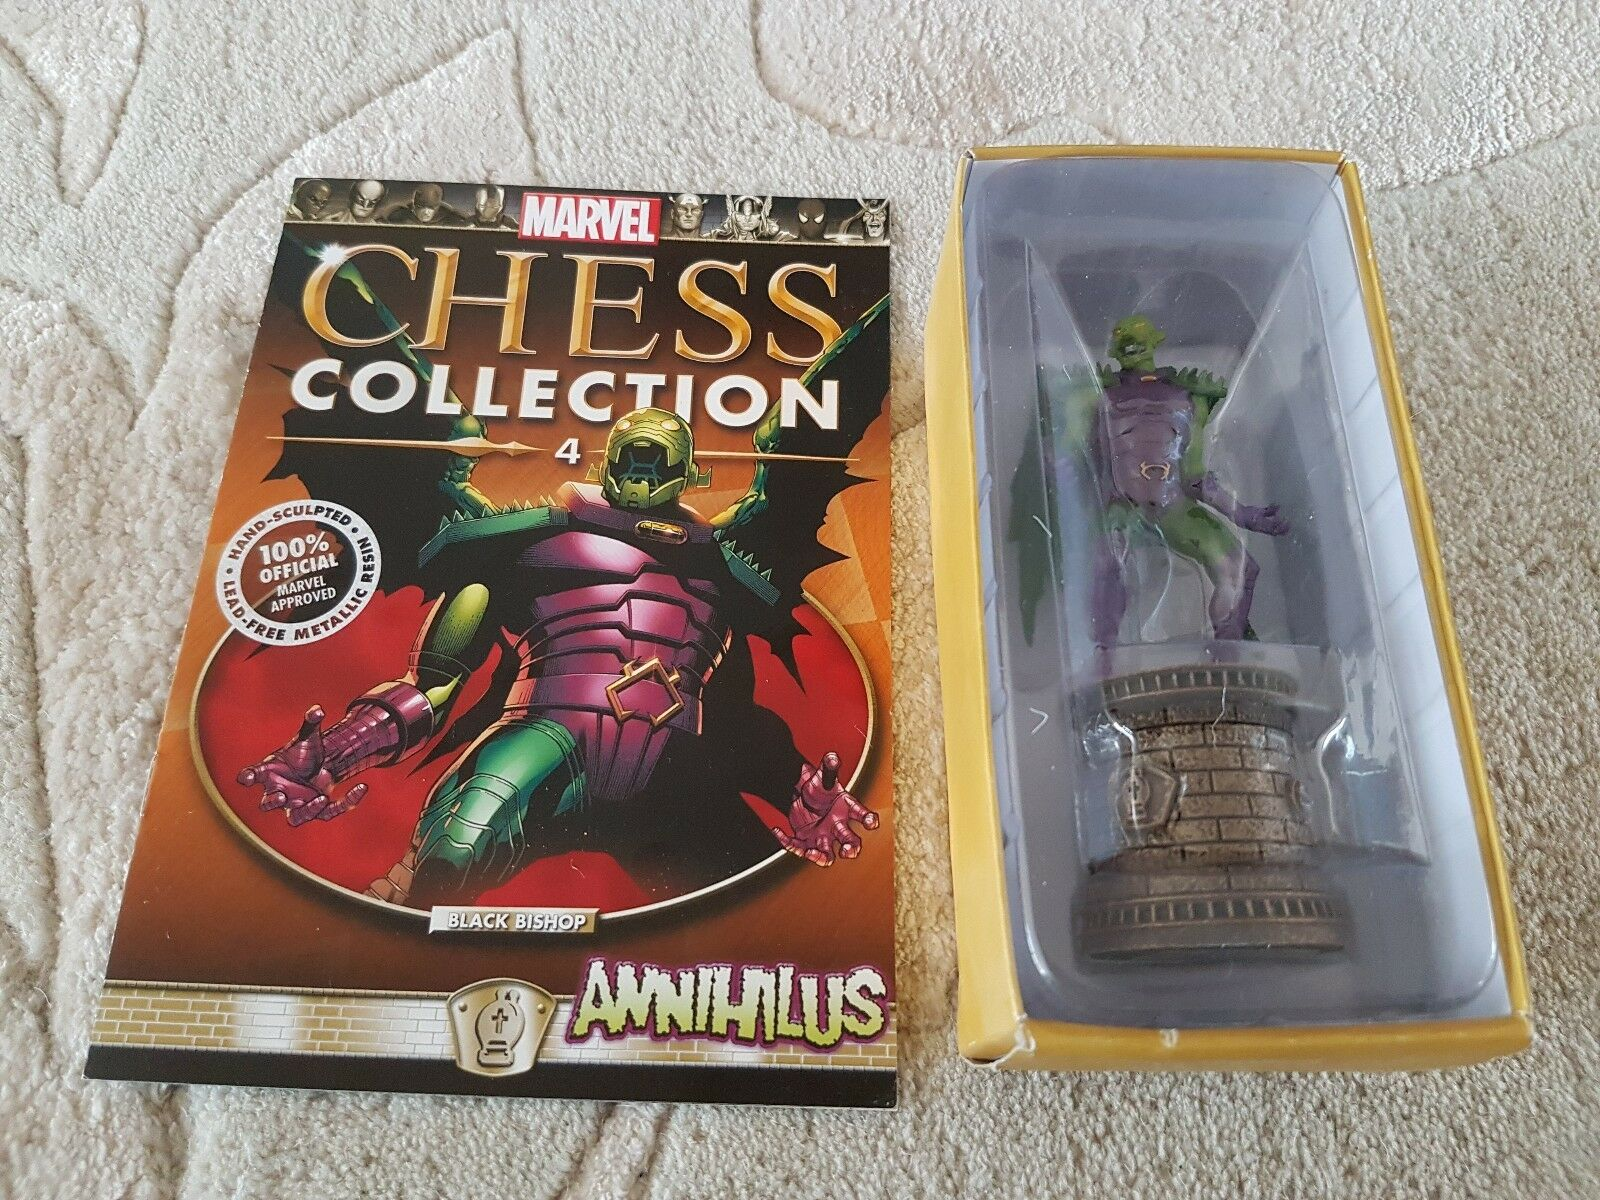 Eaglemoss Marvel Chess Special Limited Edition Fantastic 4 ANNIHILUS + Mag